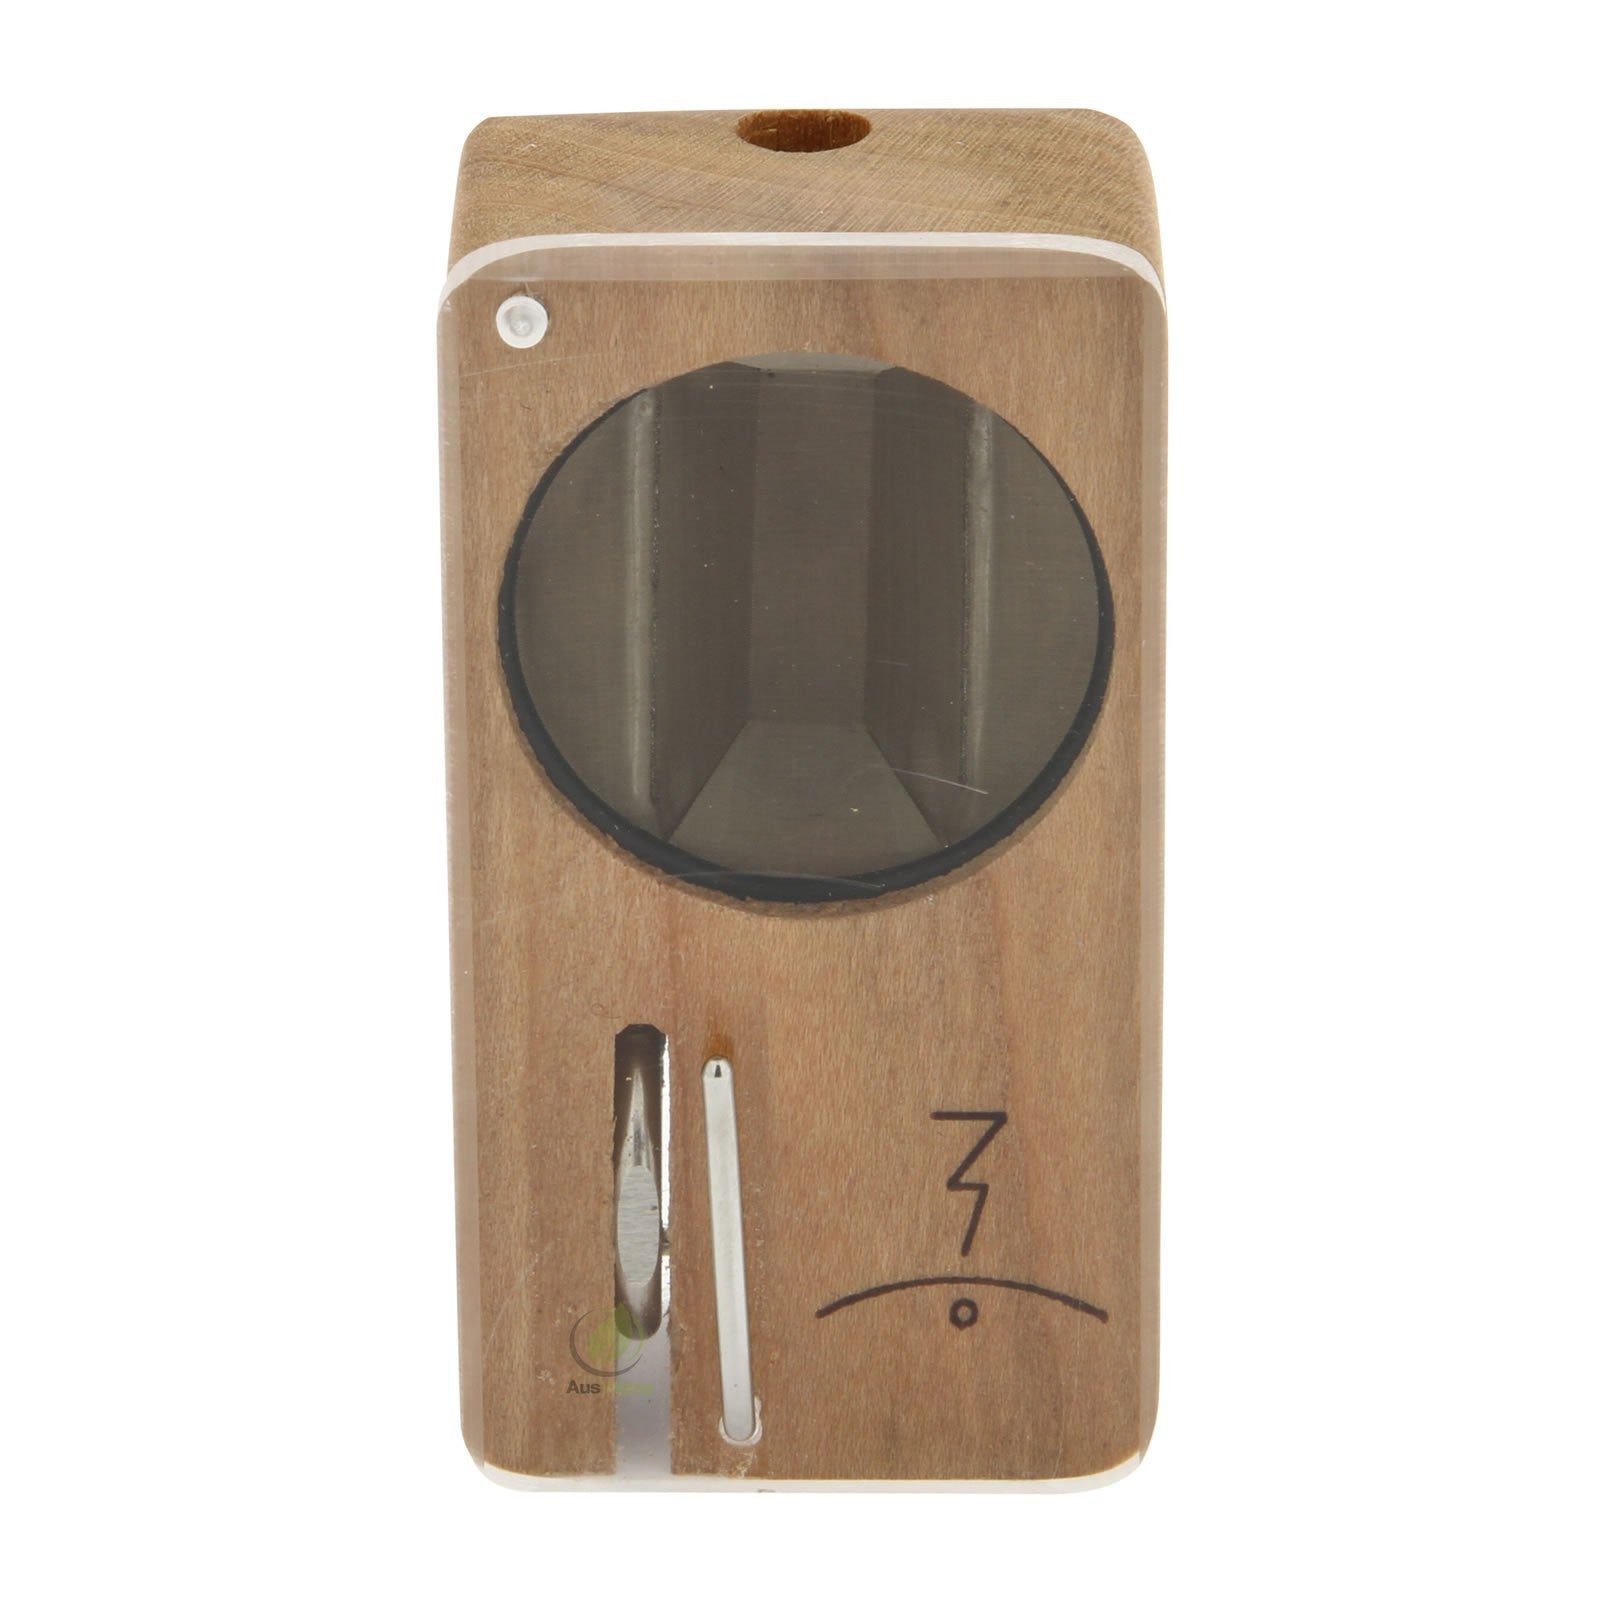 Magic Flight Launchbox Vaporizer Cherry